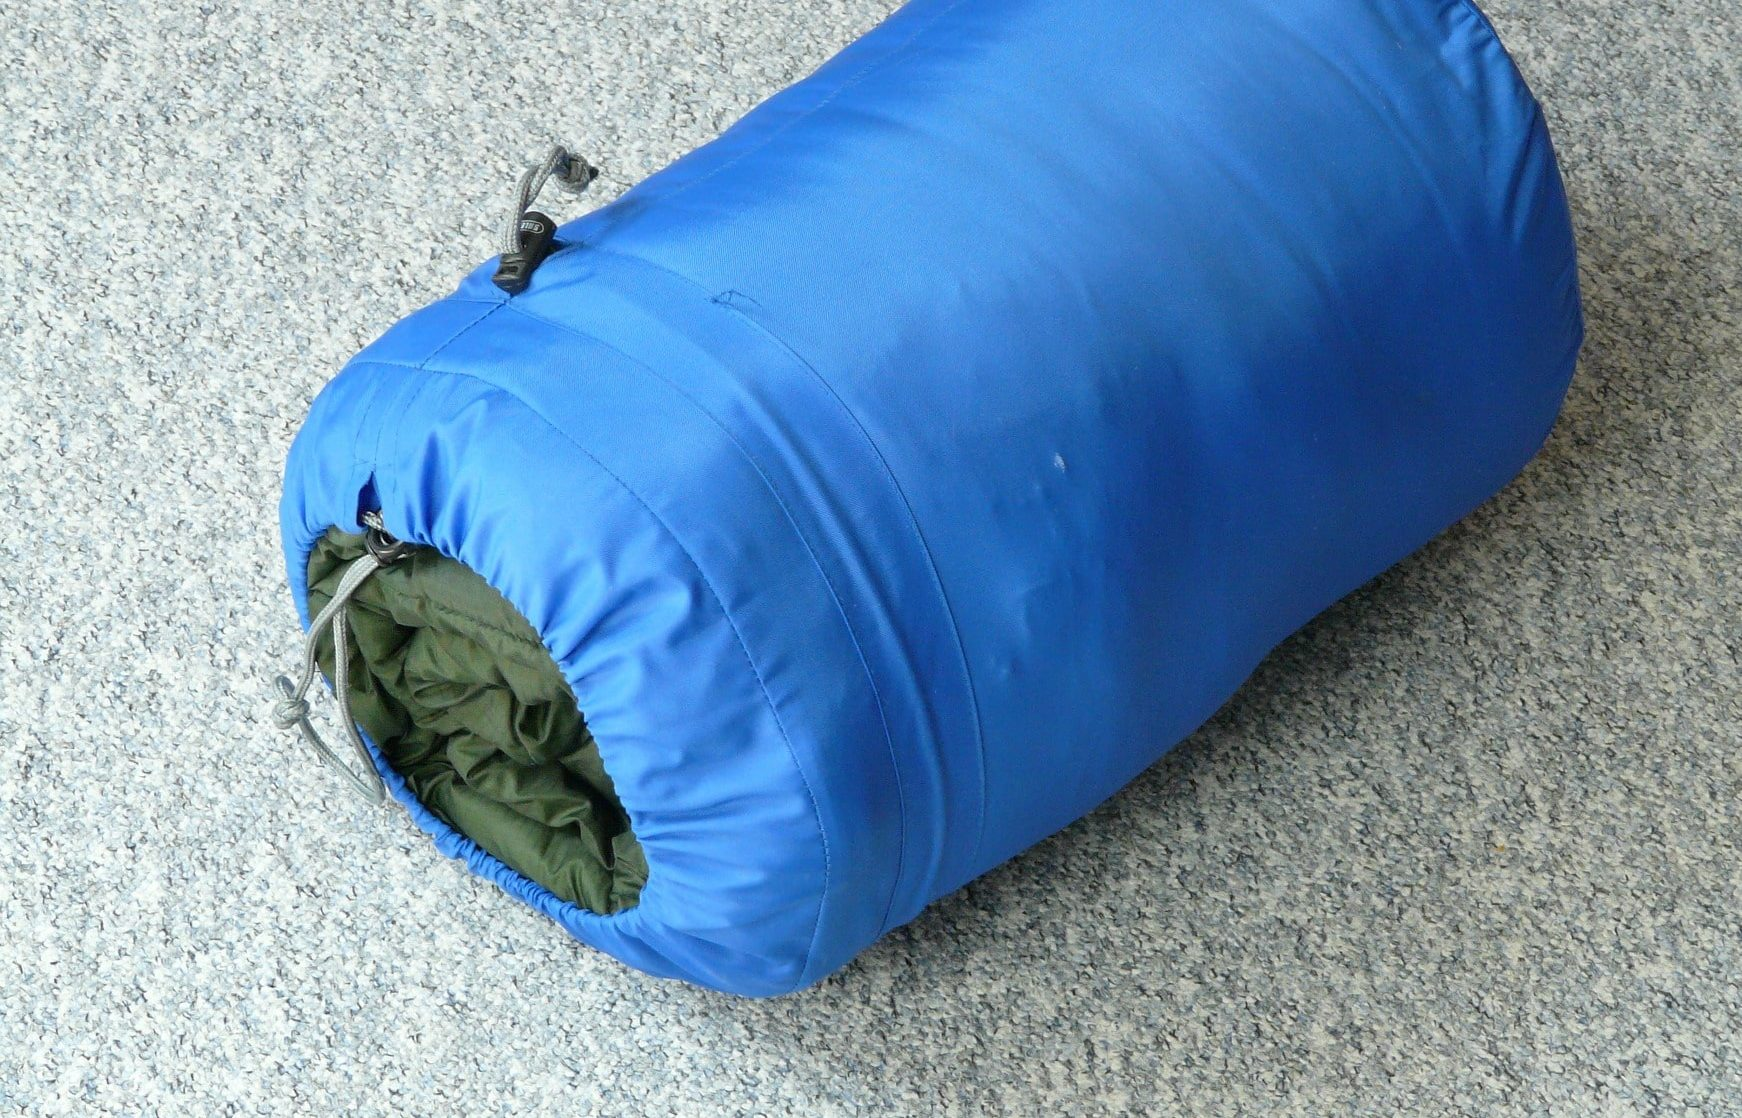 How to wash sleeping bags